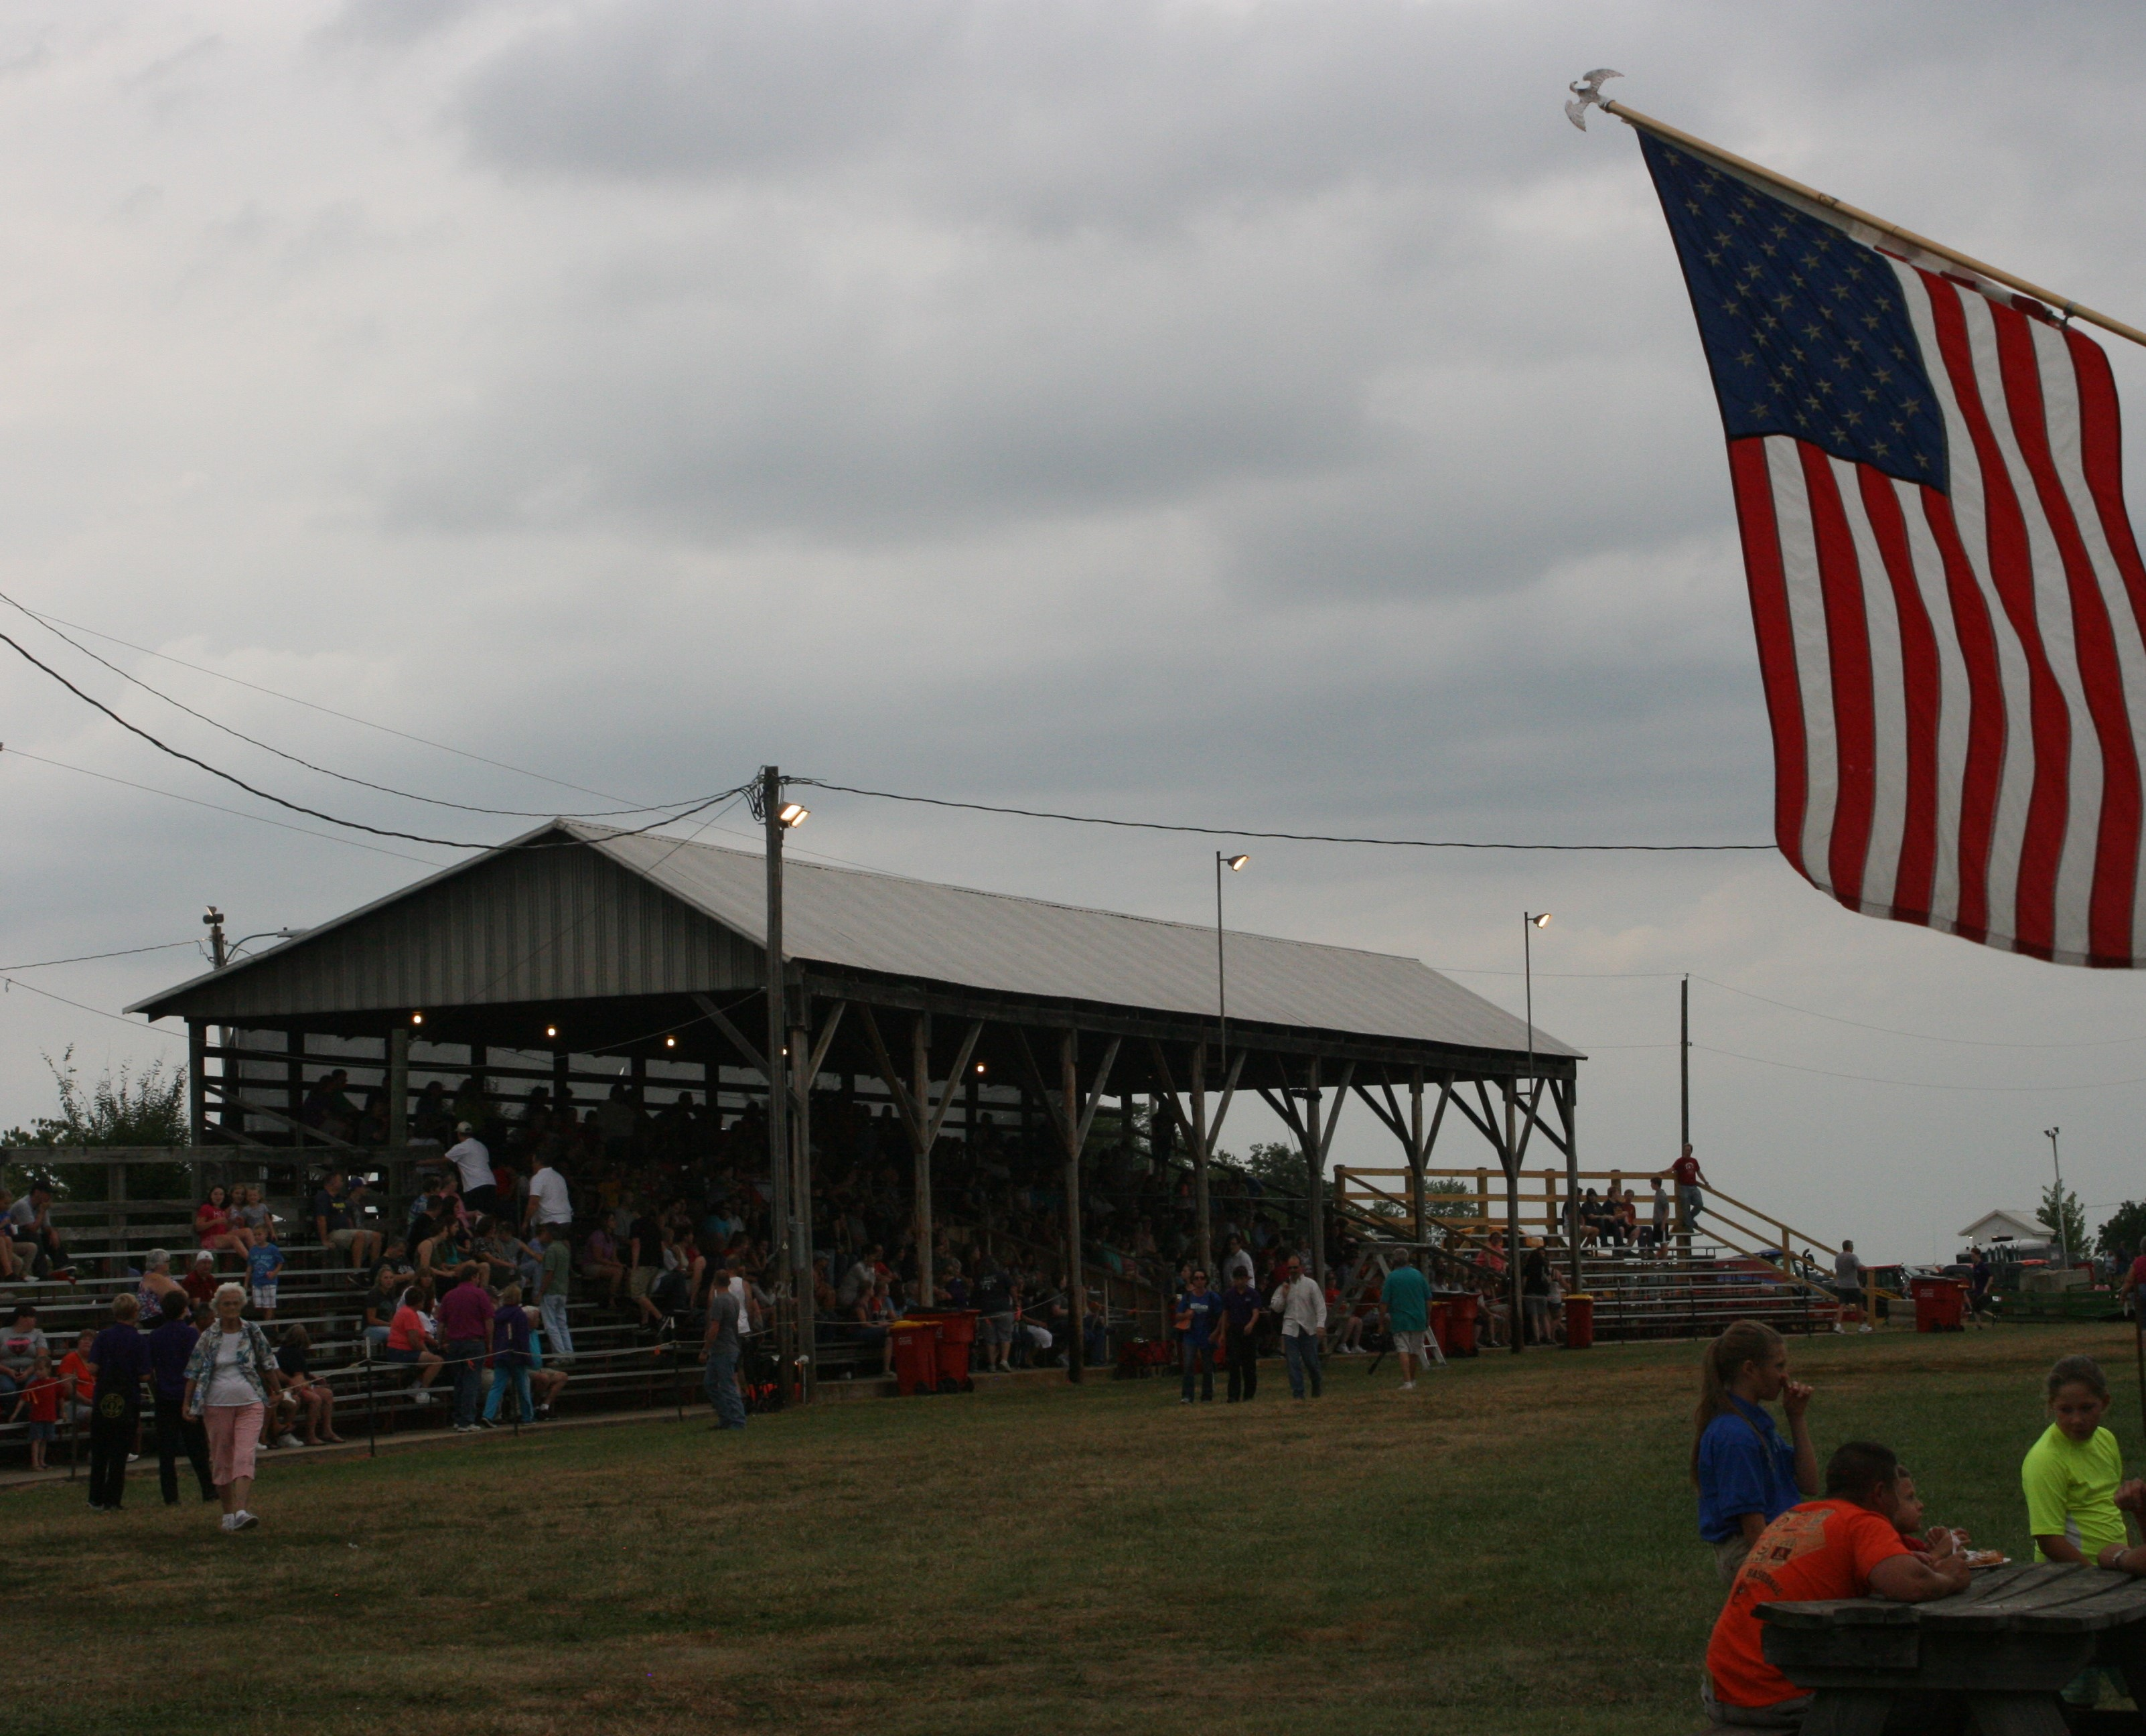 The Jefferson County Fair Photo